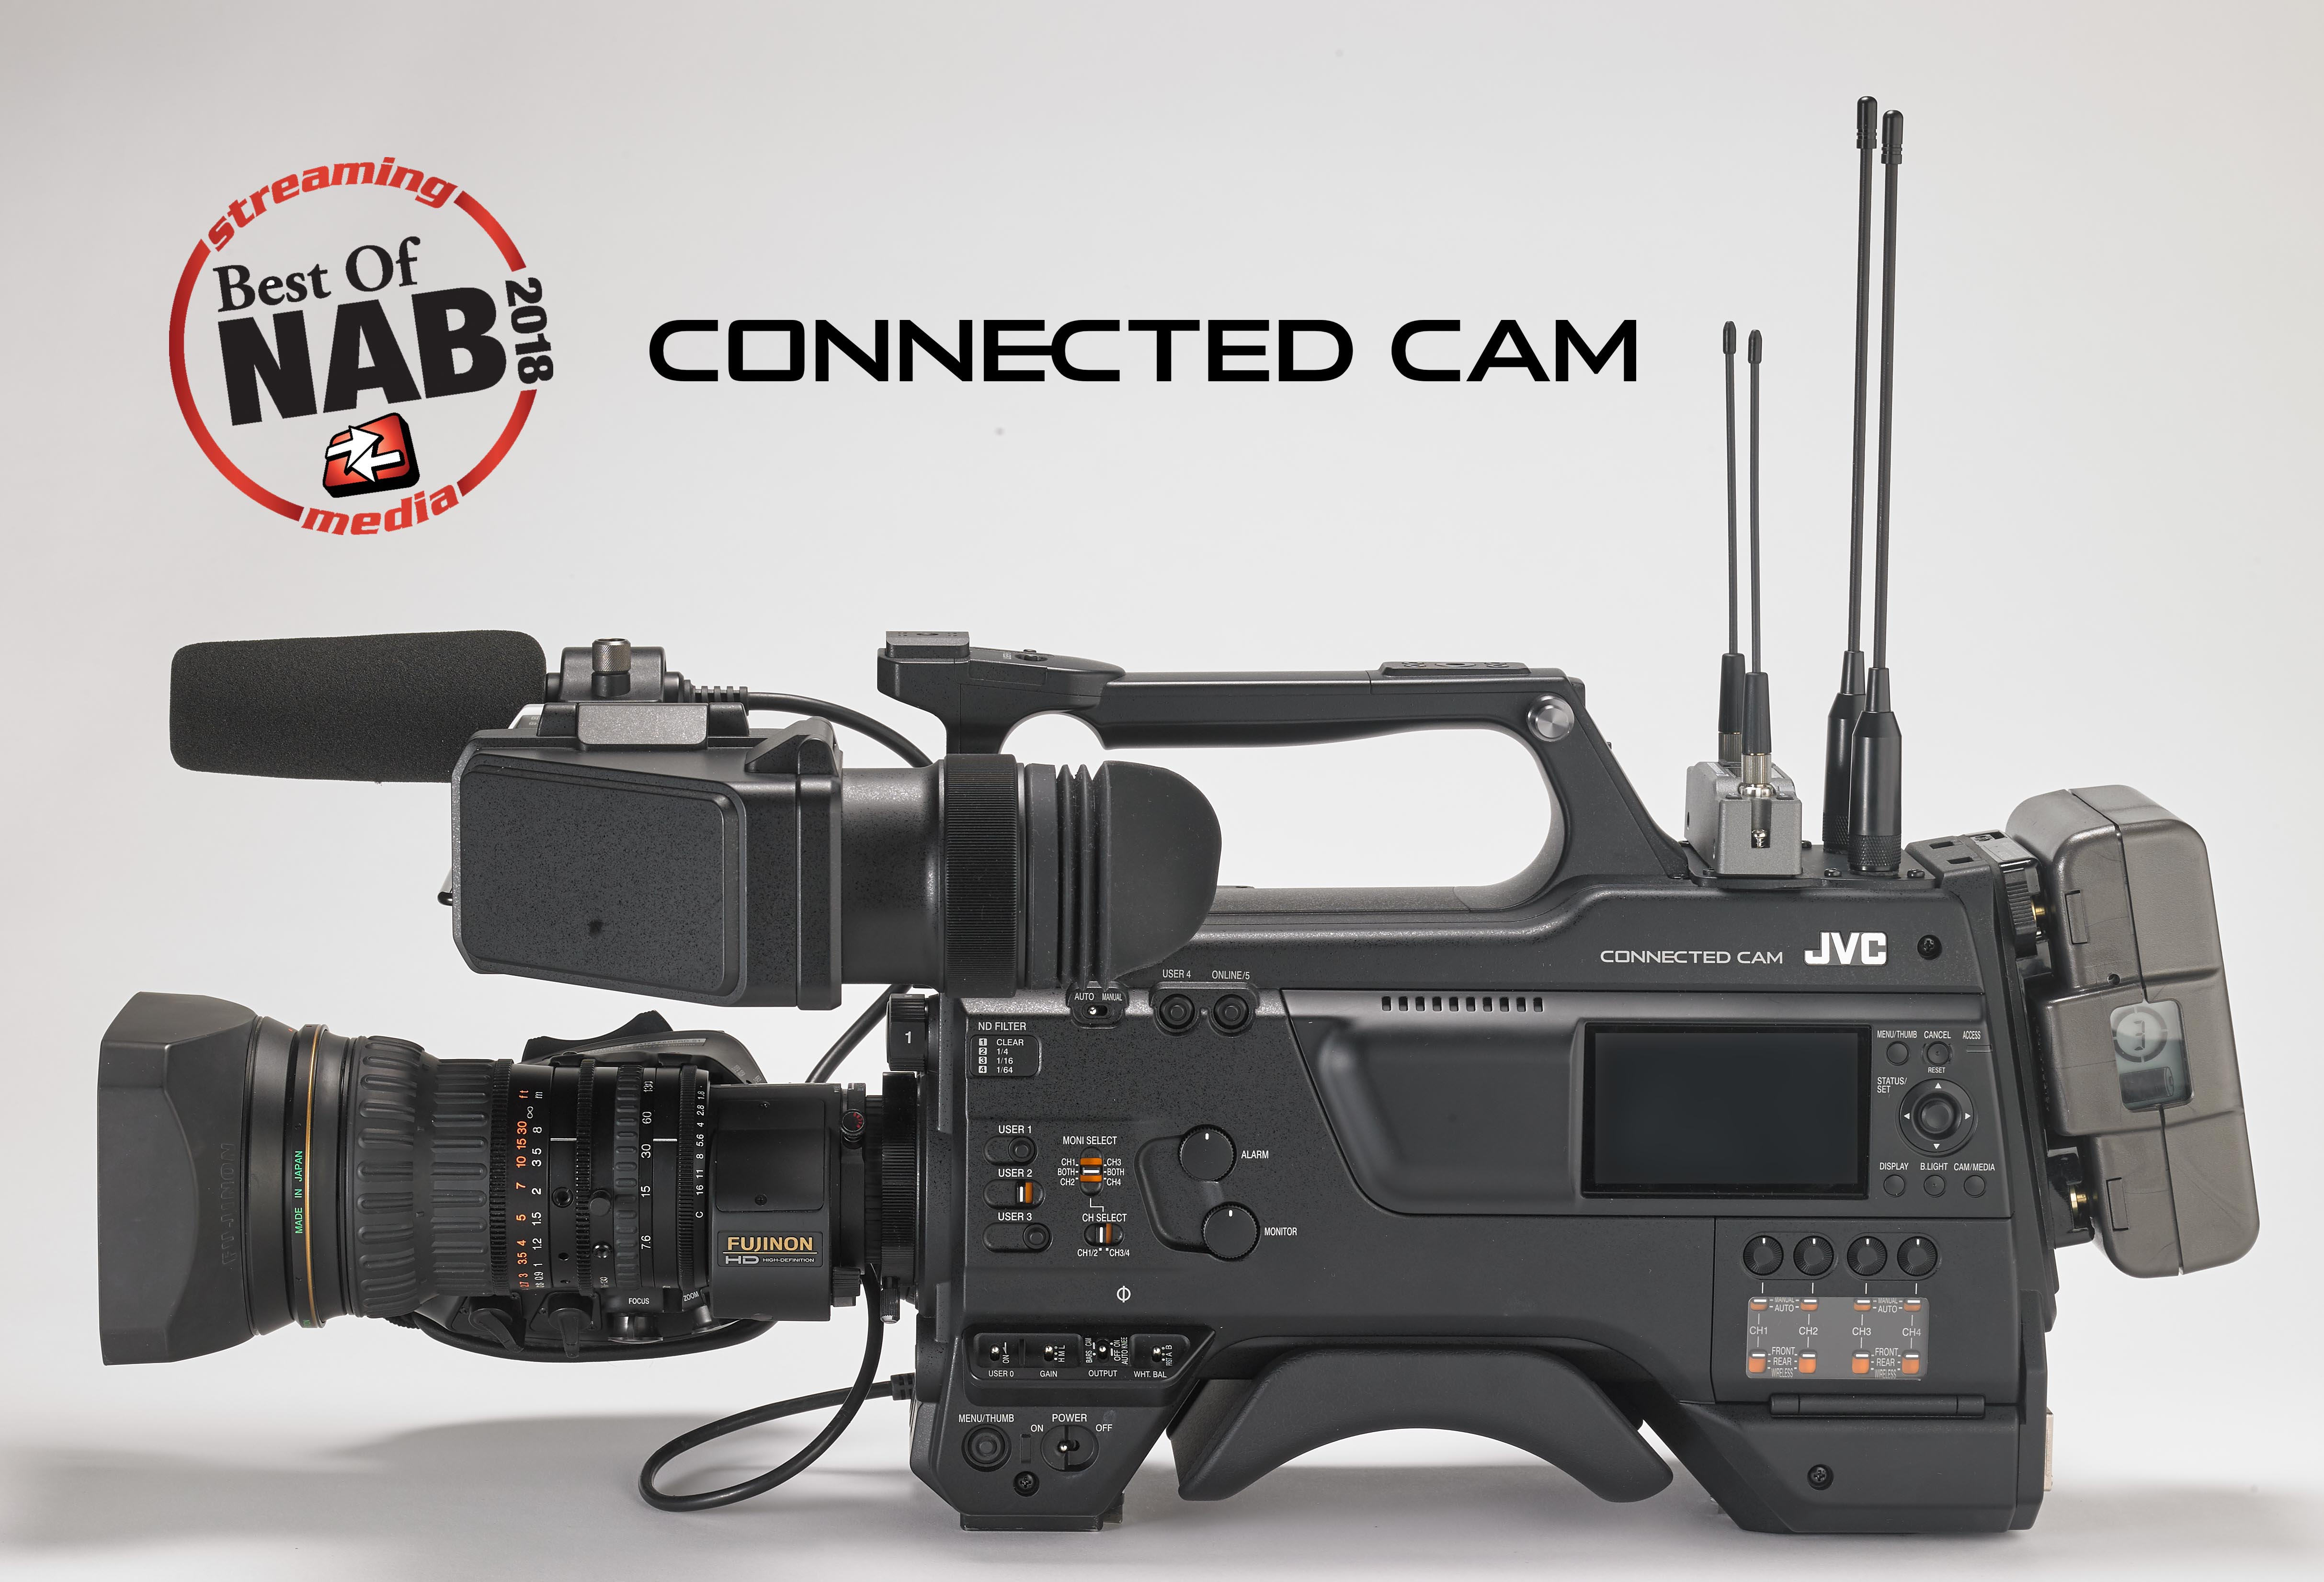 JVC News Release -- CONNECTED CAM named Best of NAB 2018 by